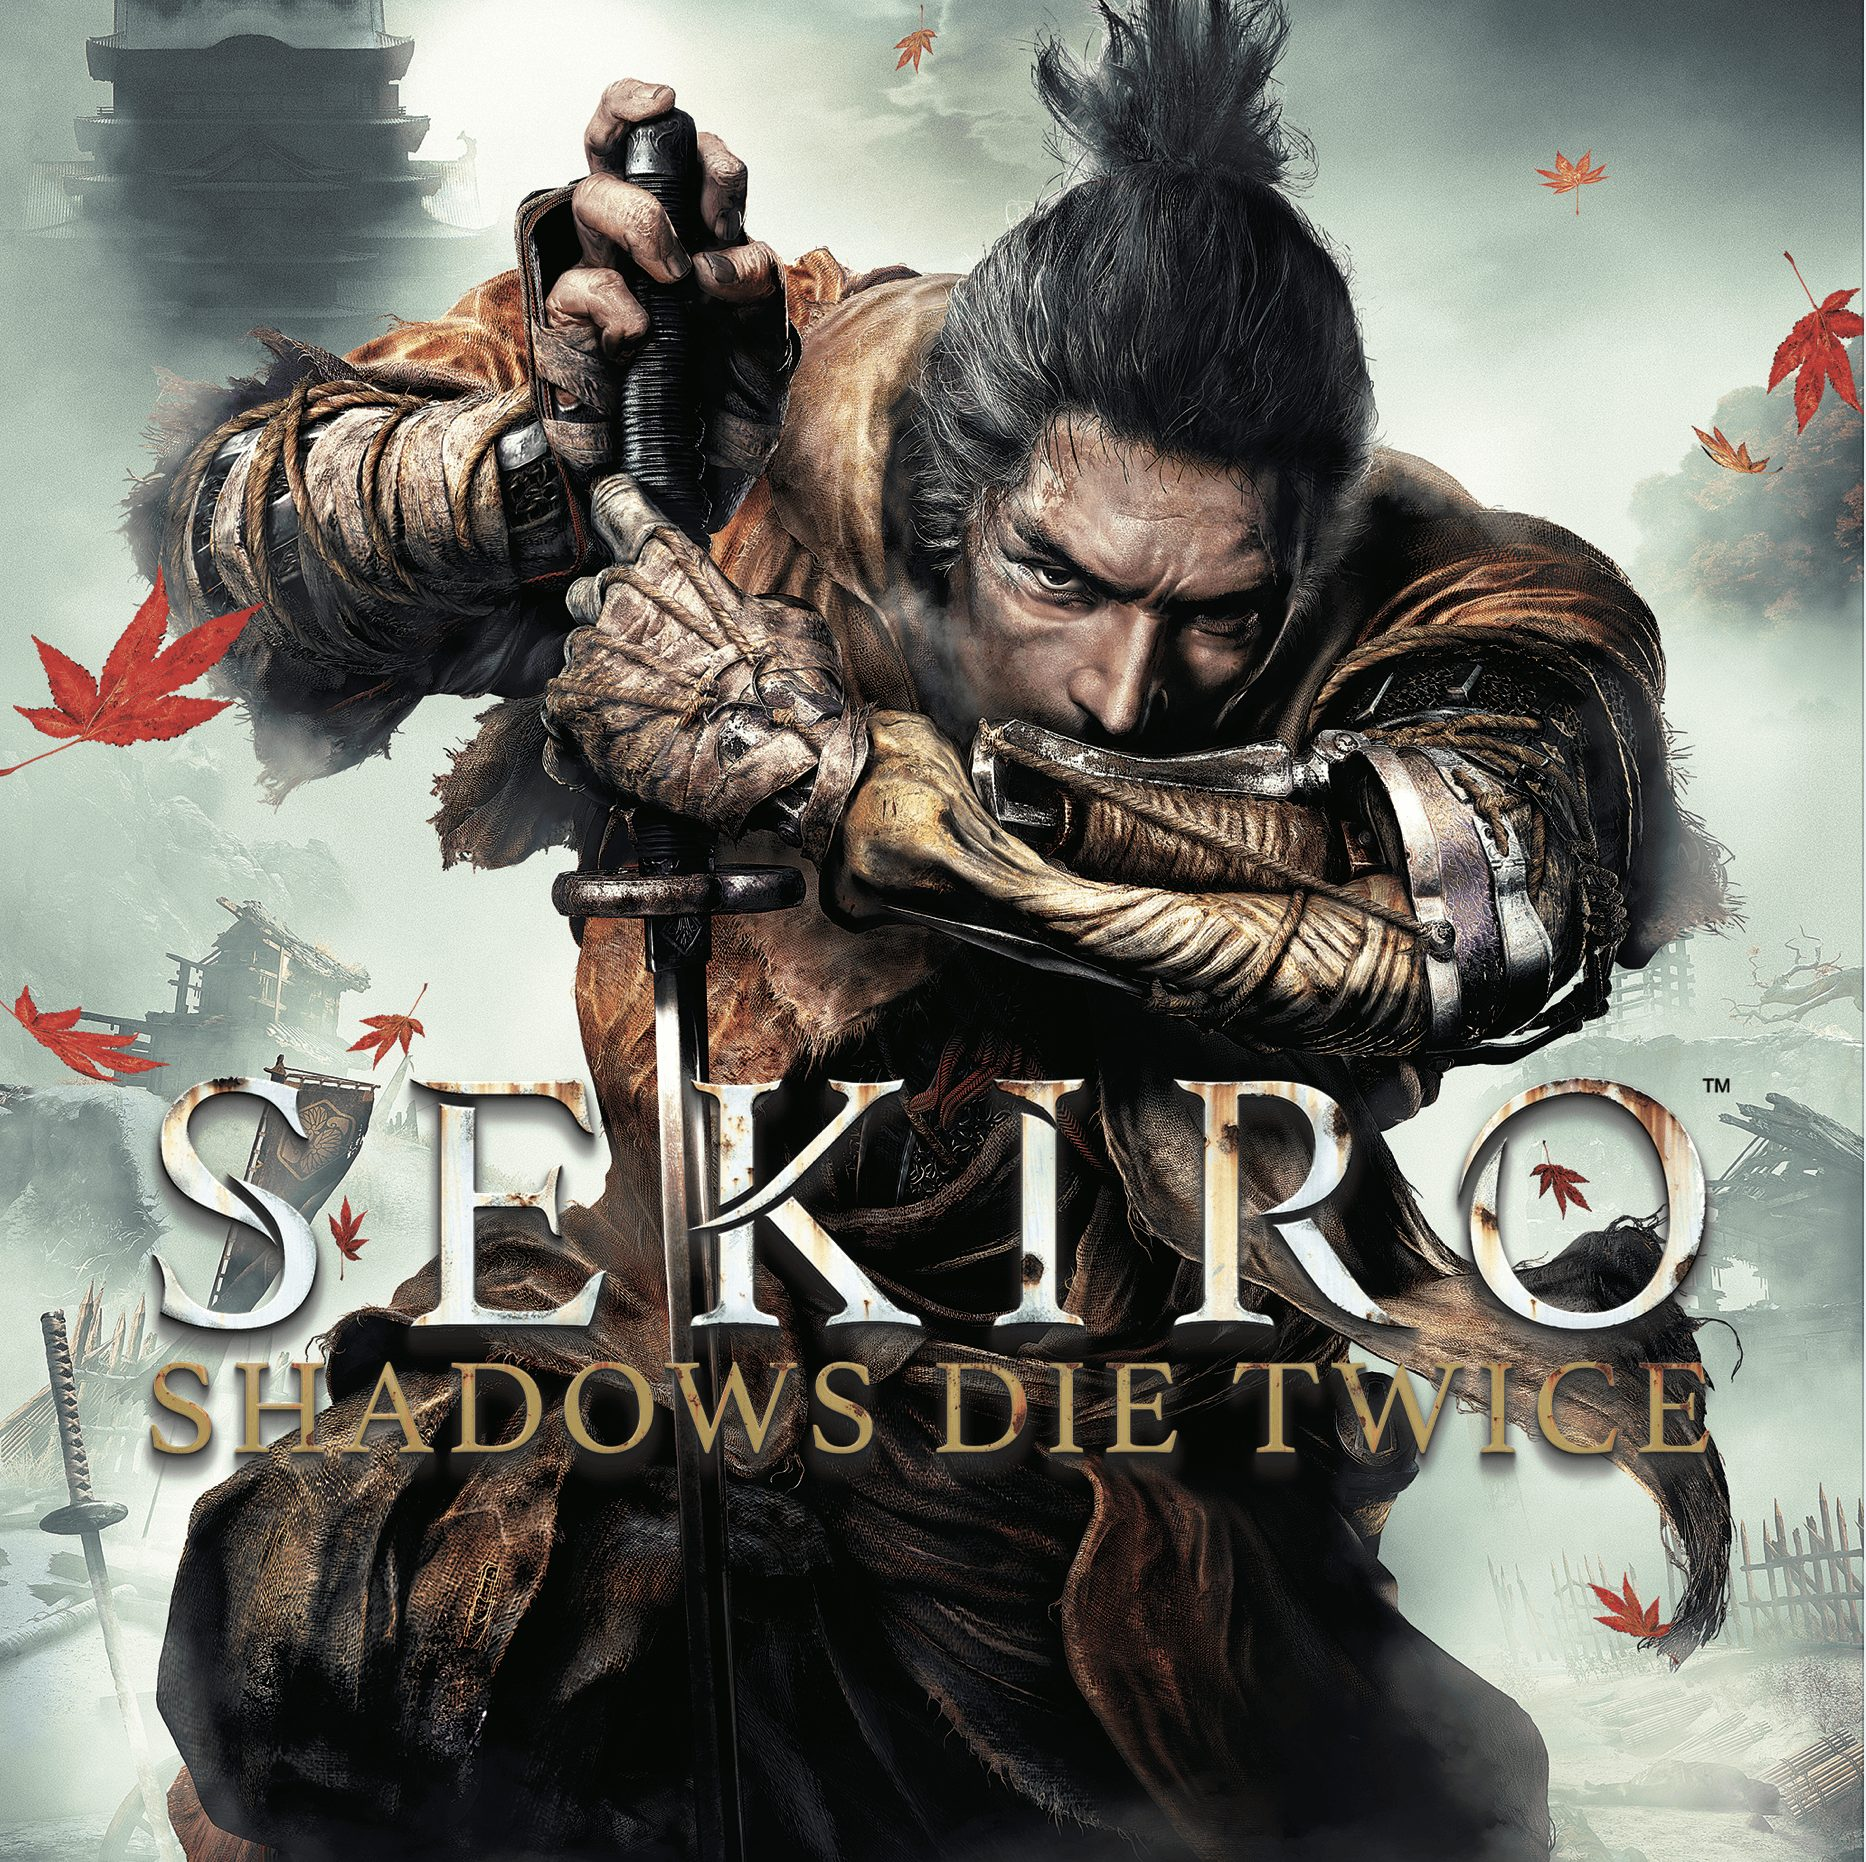 ENT-05_SEKIRO-SHADOWS_DIE_TWICE_BG000142